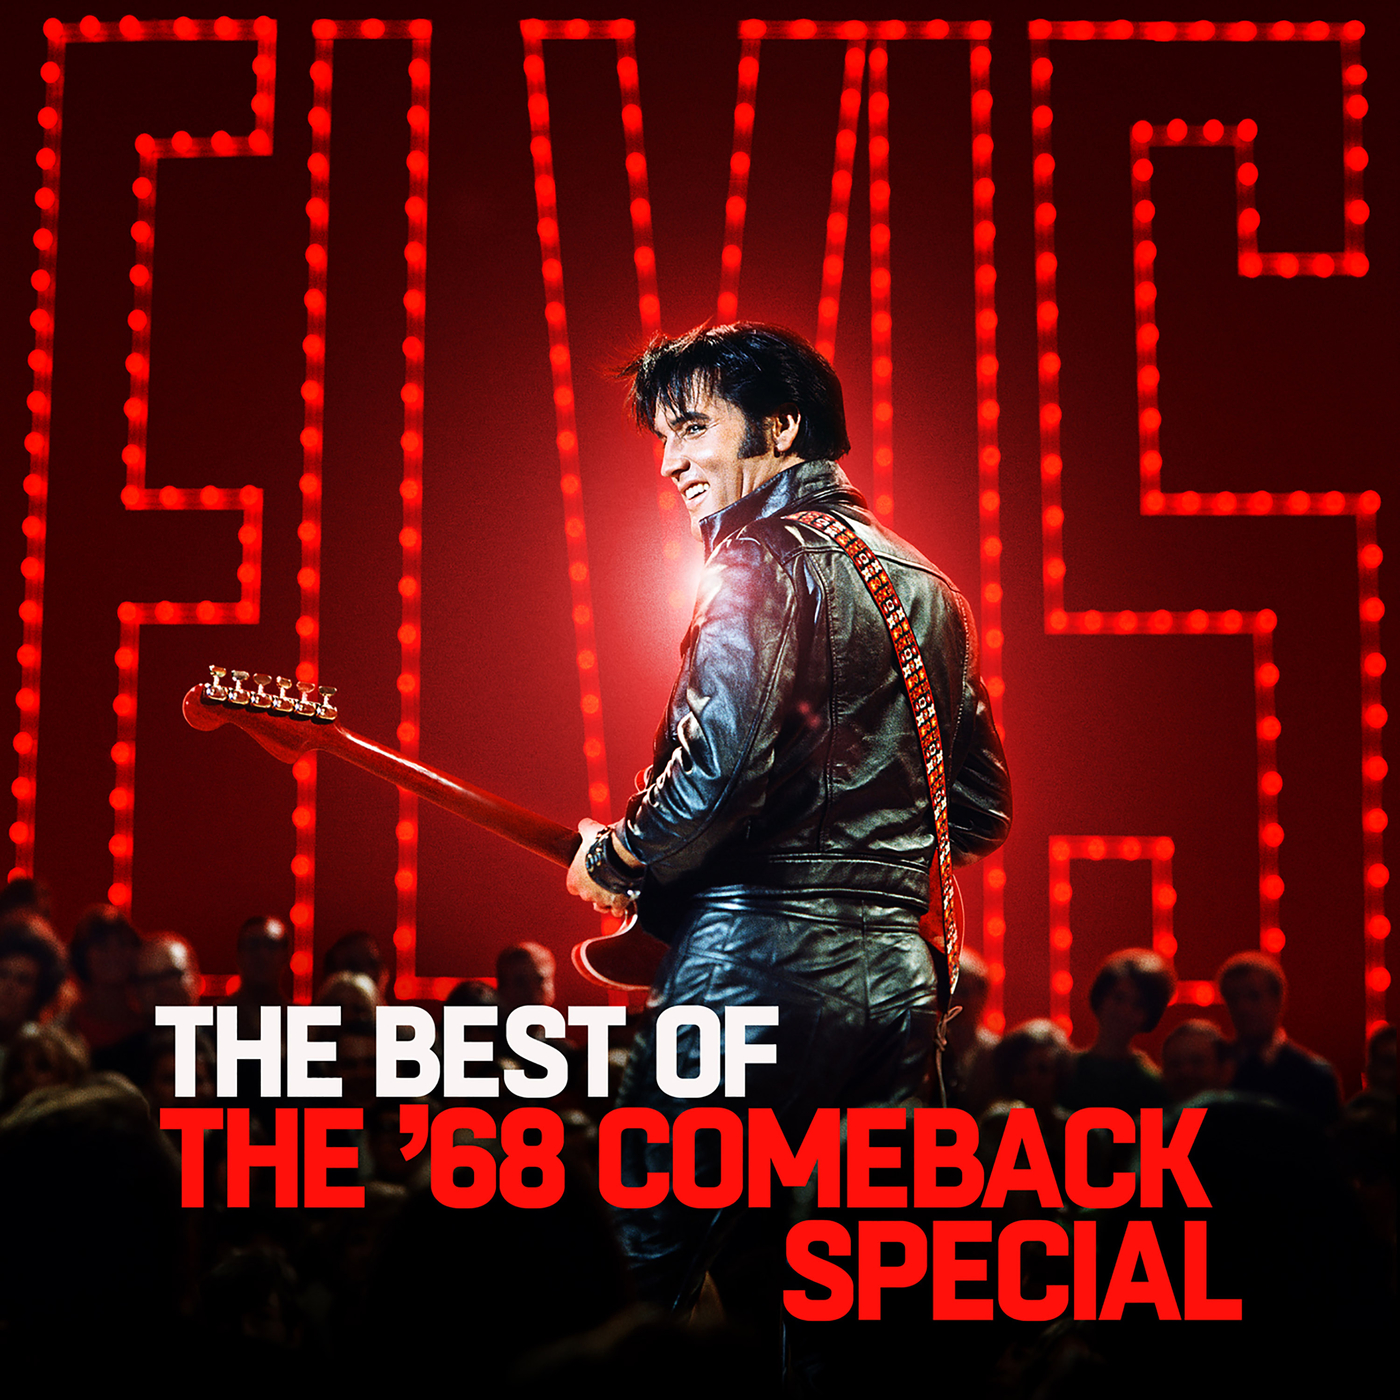 The Best of The '68 Comeback Special - Elvis Presley